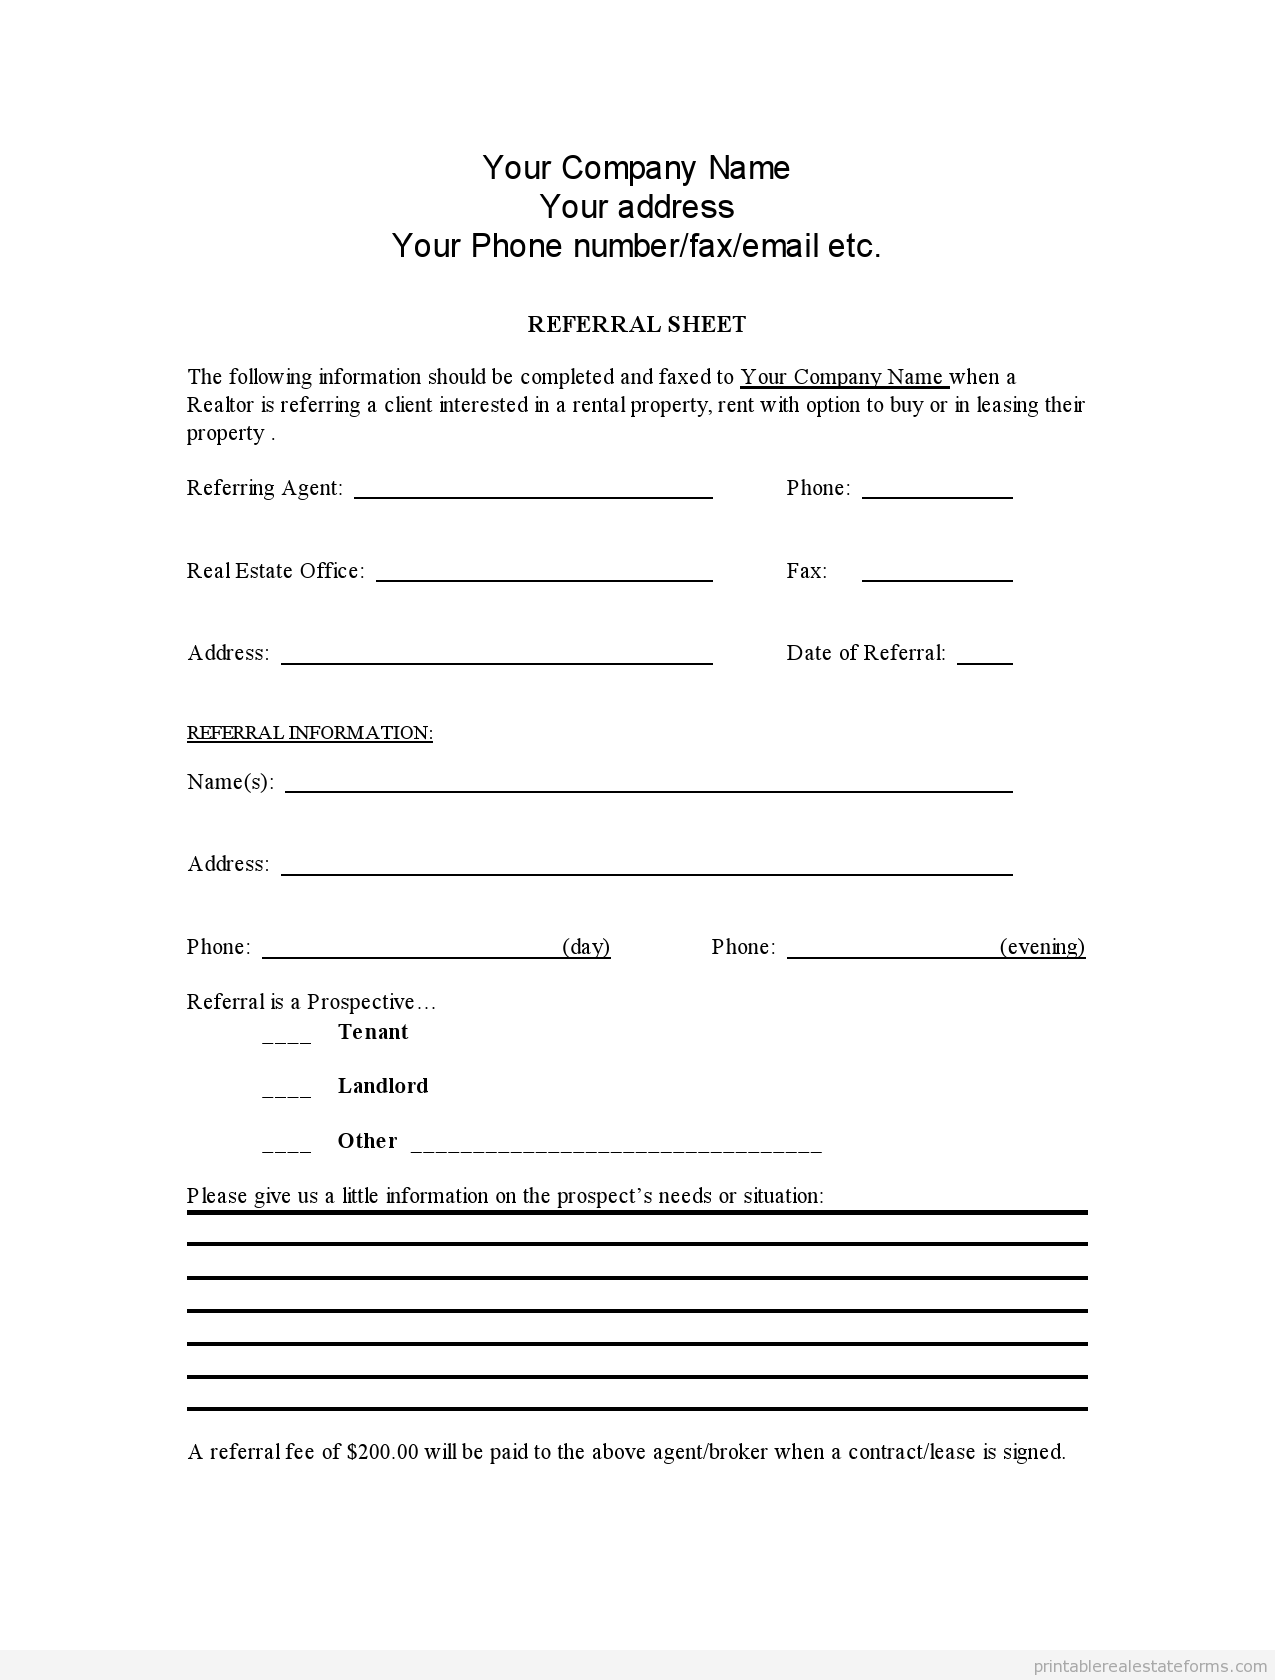 Sample Printable Referral Sheet For Realtors Form  Latest Sample